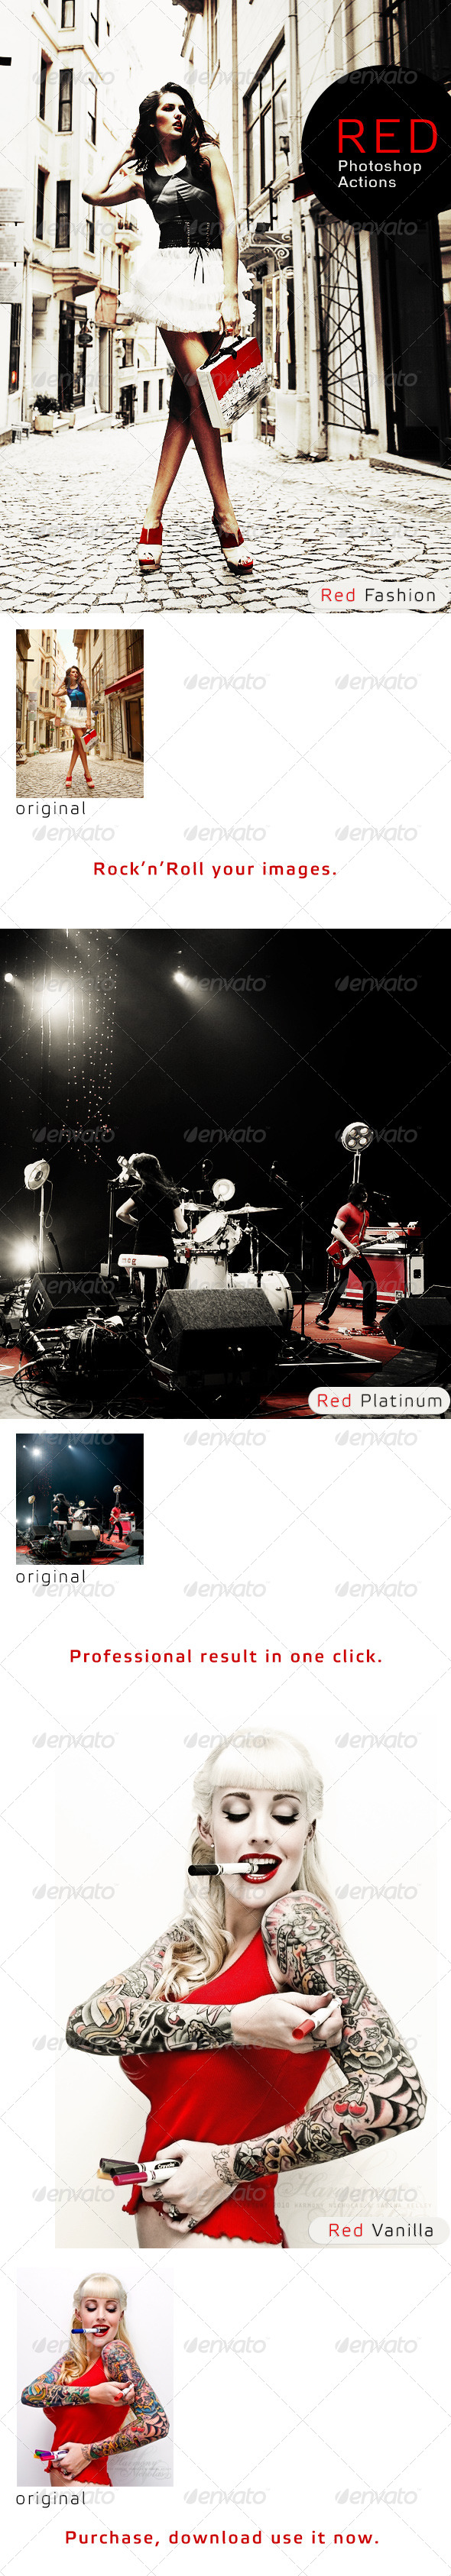 GraphicRiver Professional Red Black & White 4493526